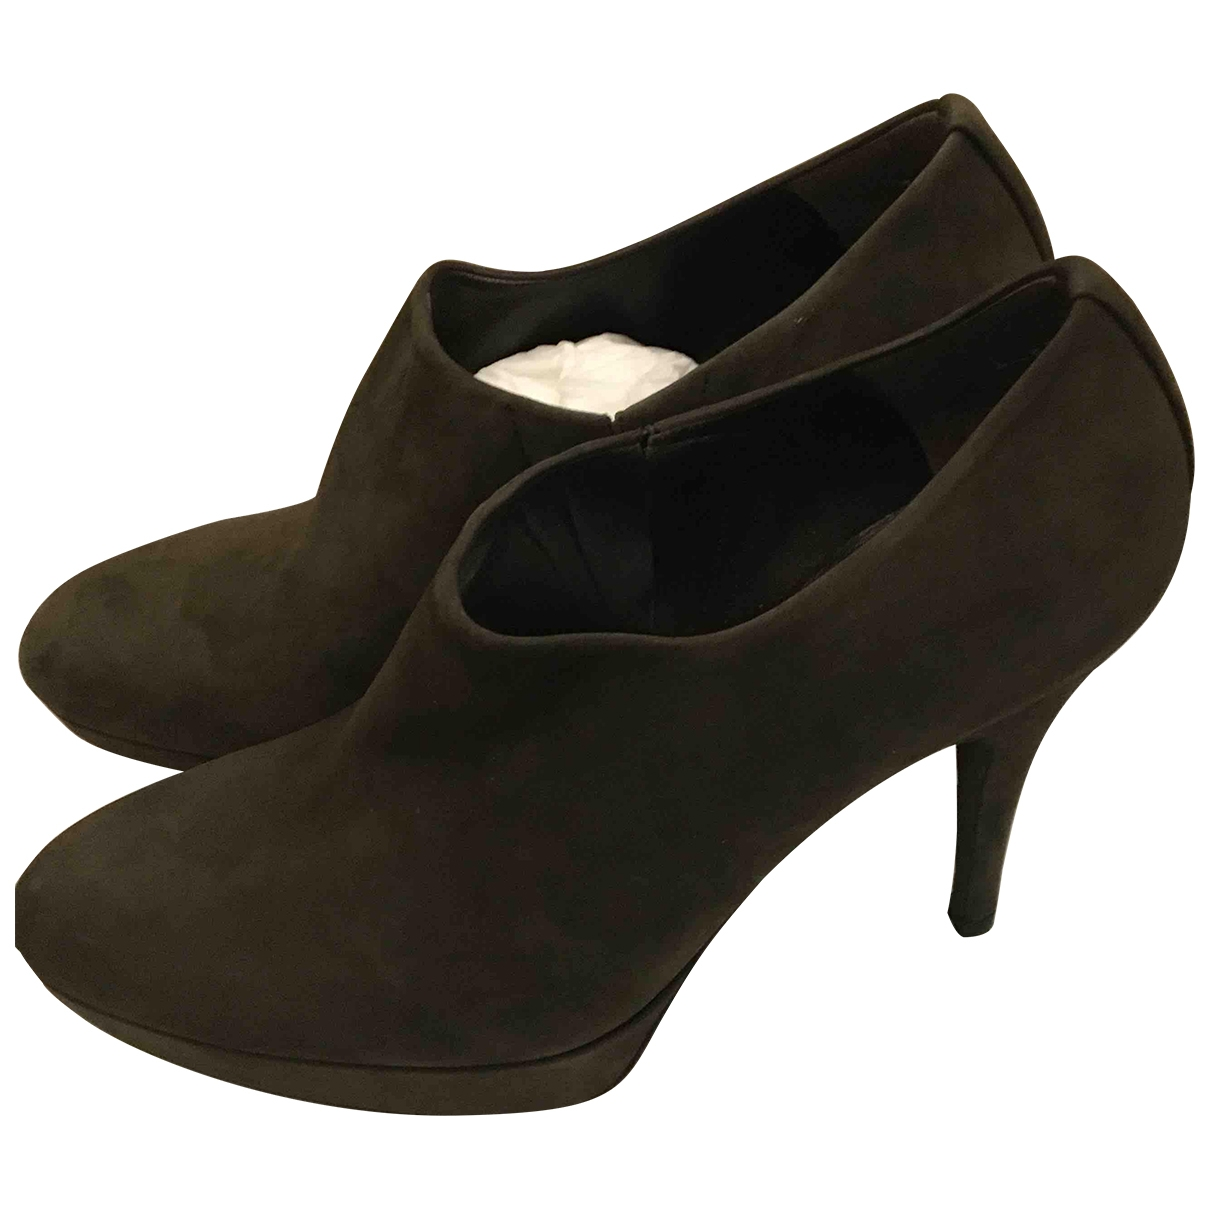 Stuart Weitzman \N Suede Ankle boots for Women 38.5 EU